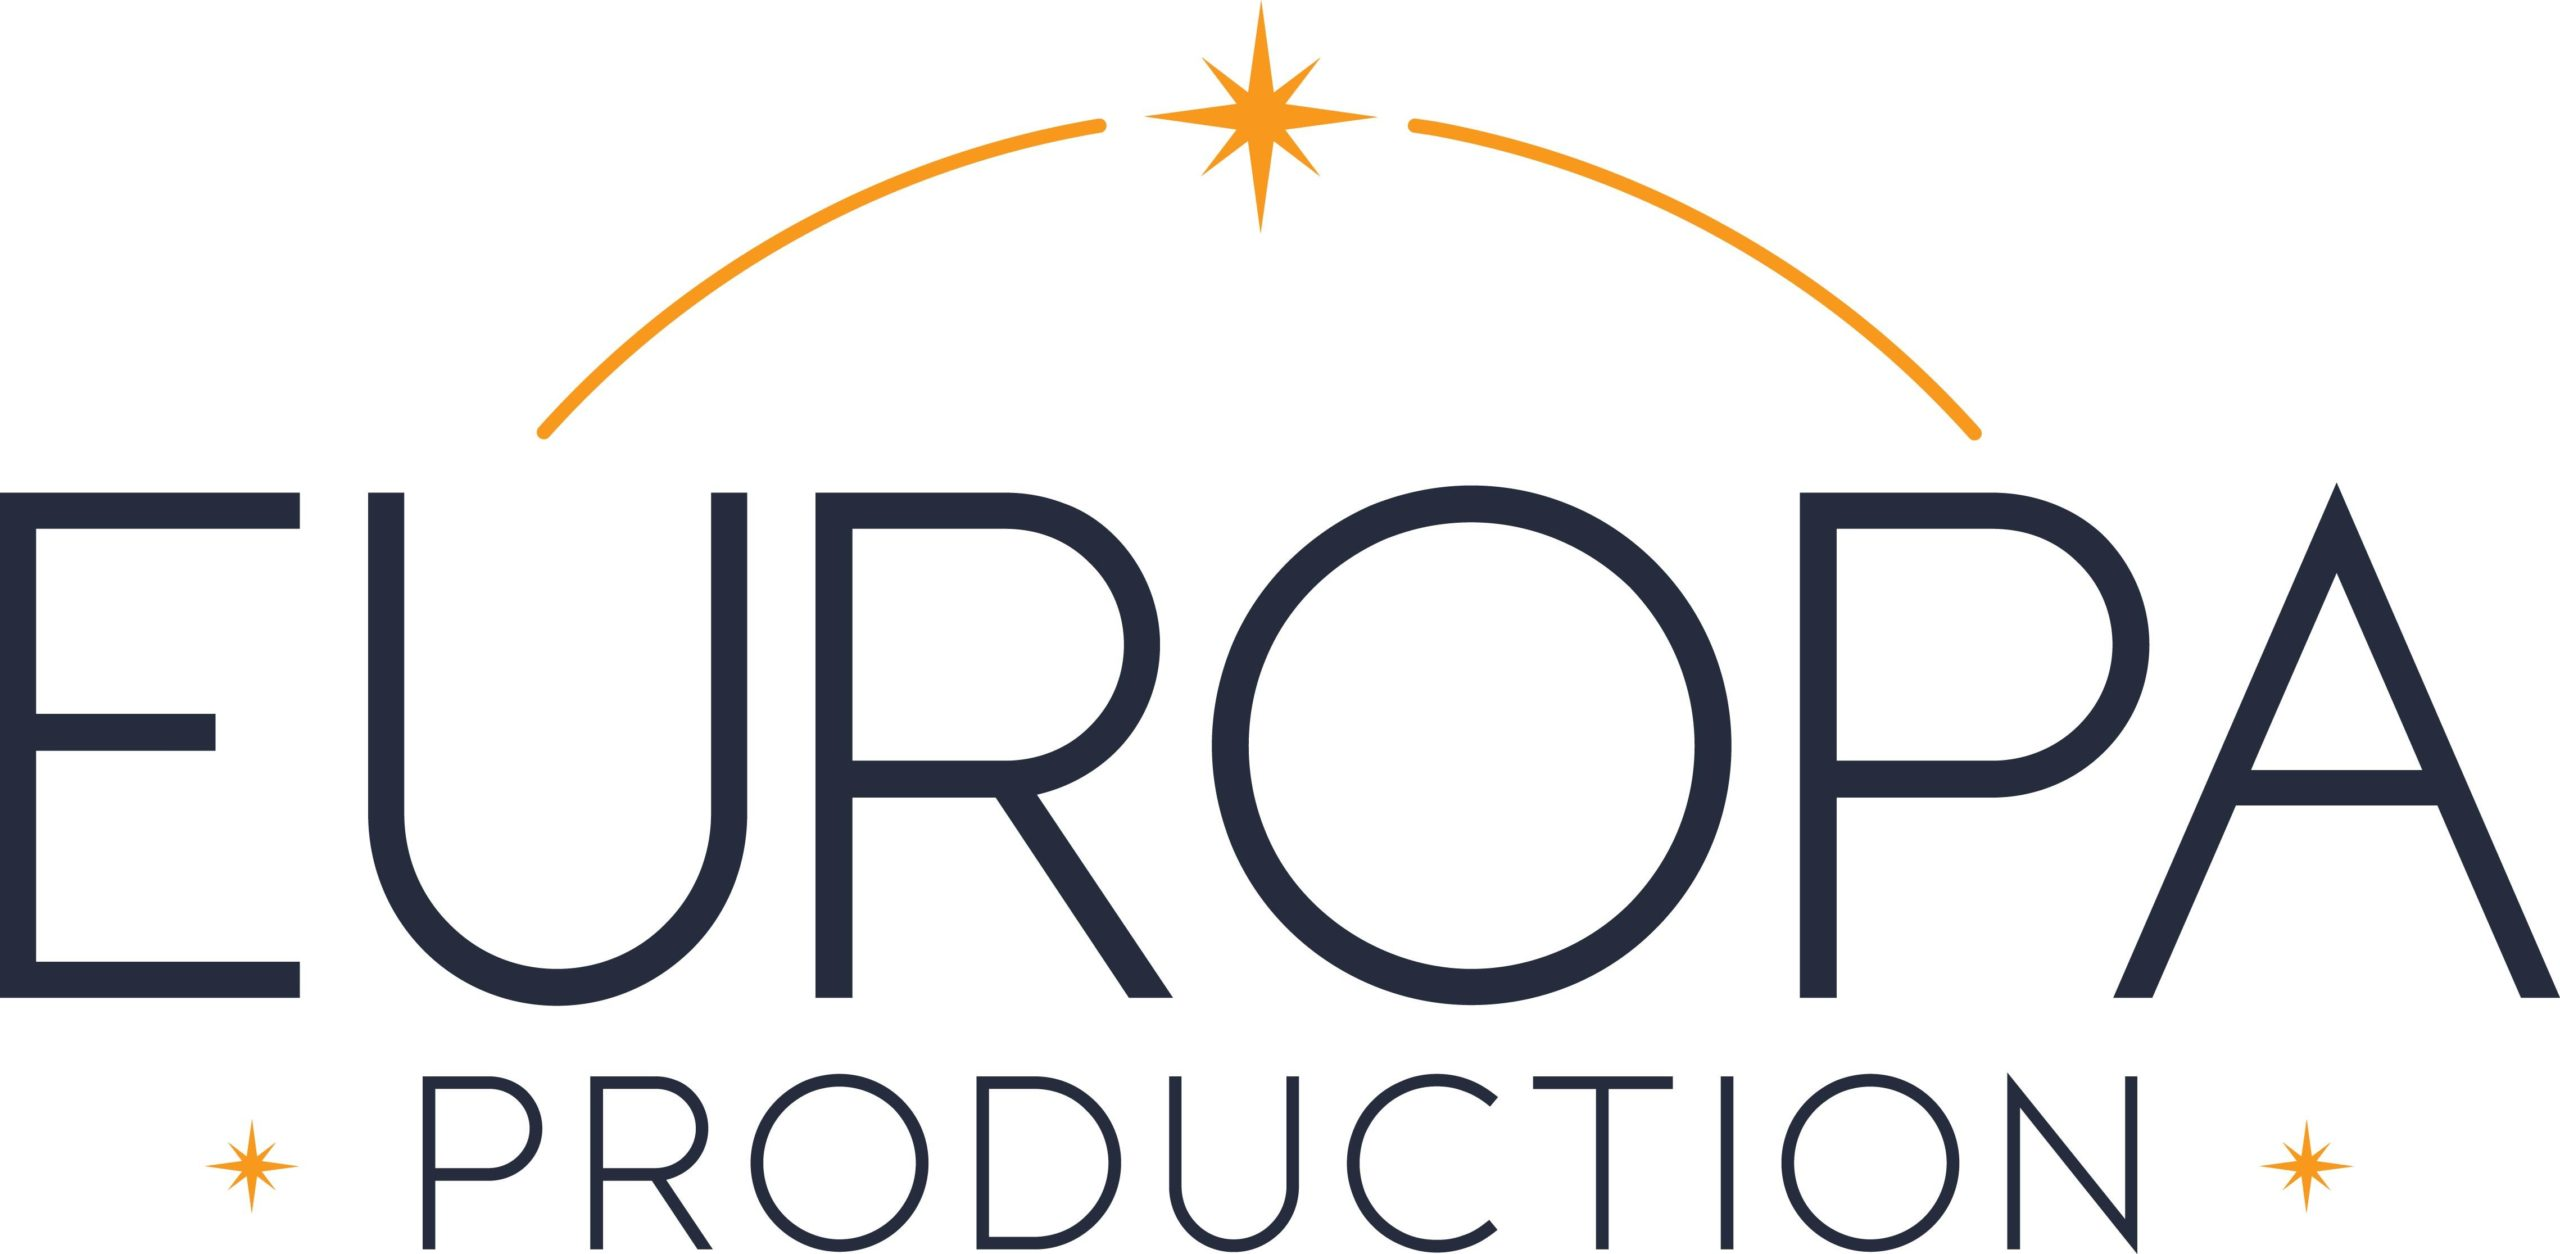 EUROPA PRODUCTION